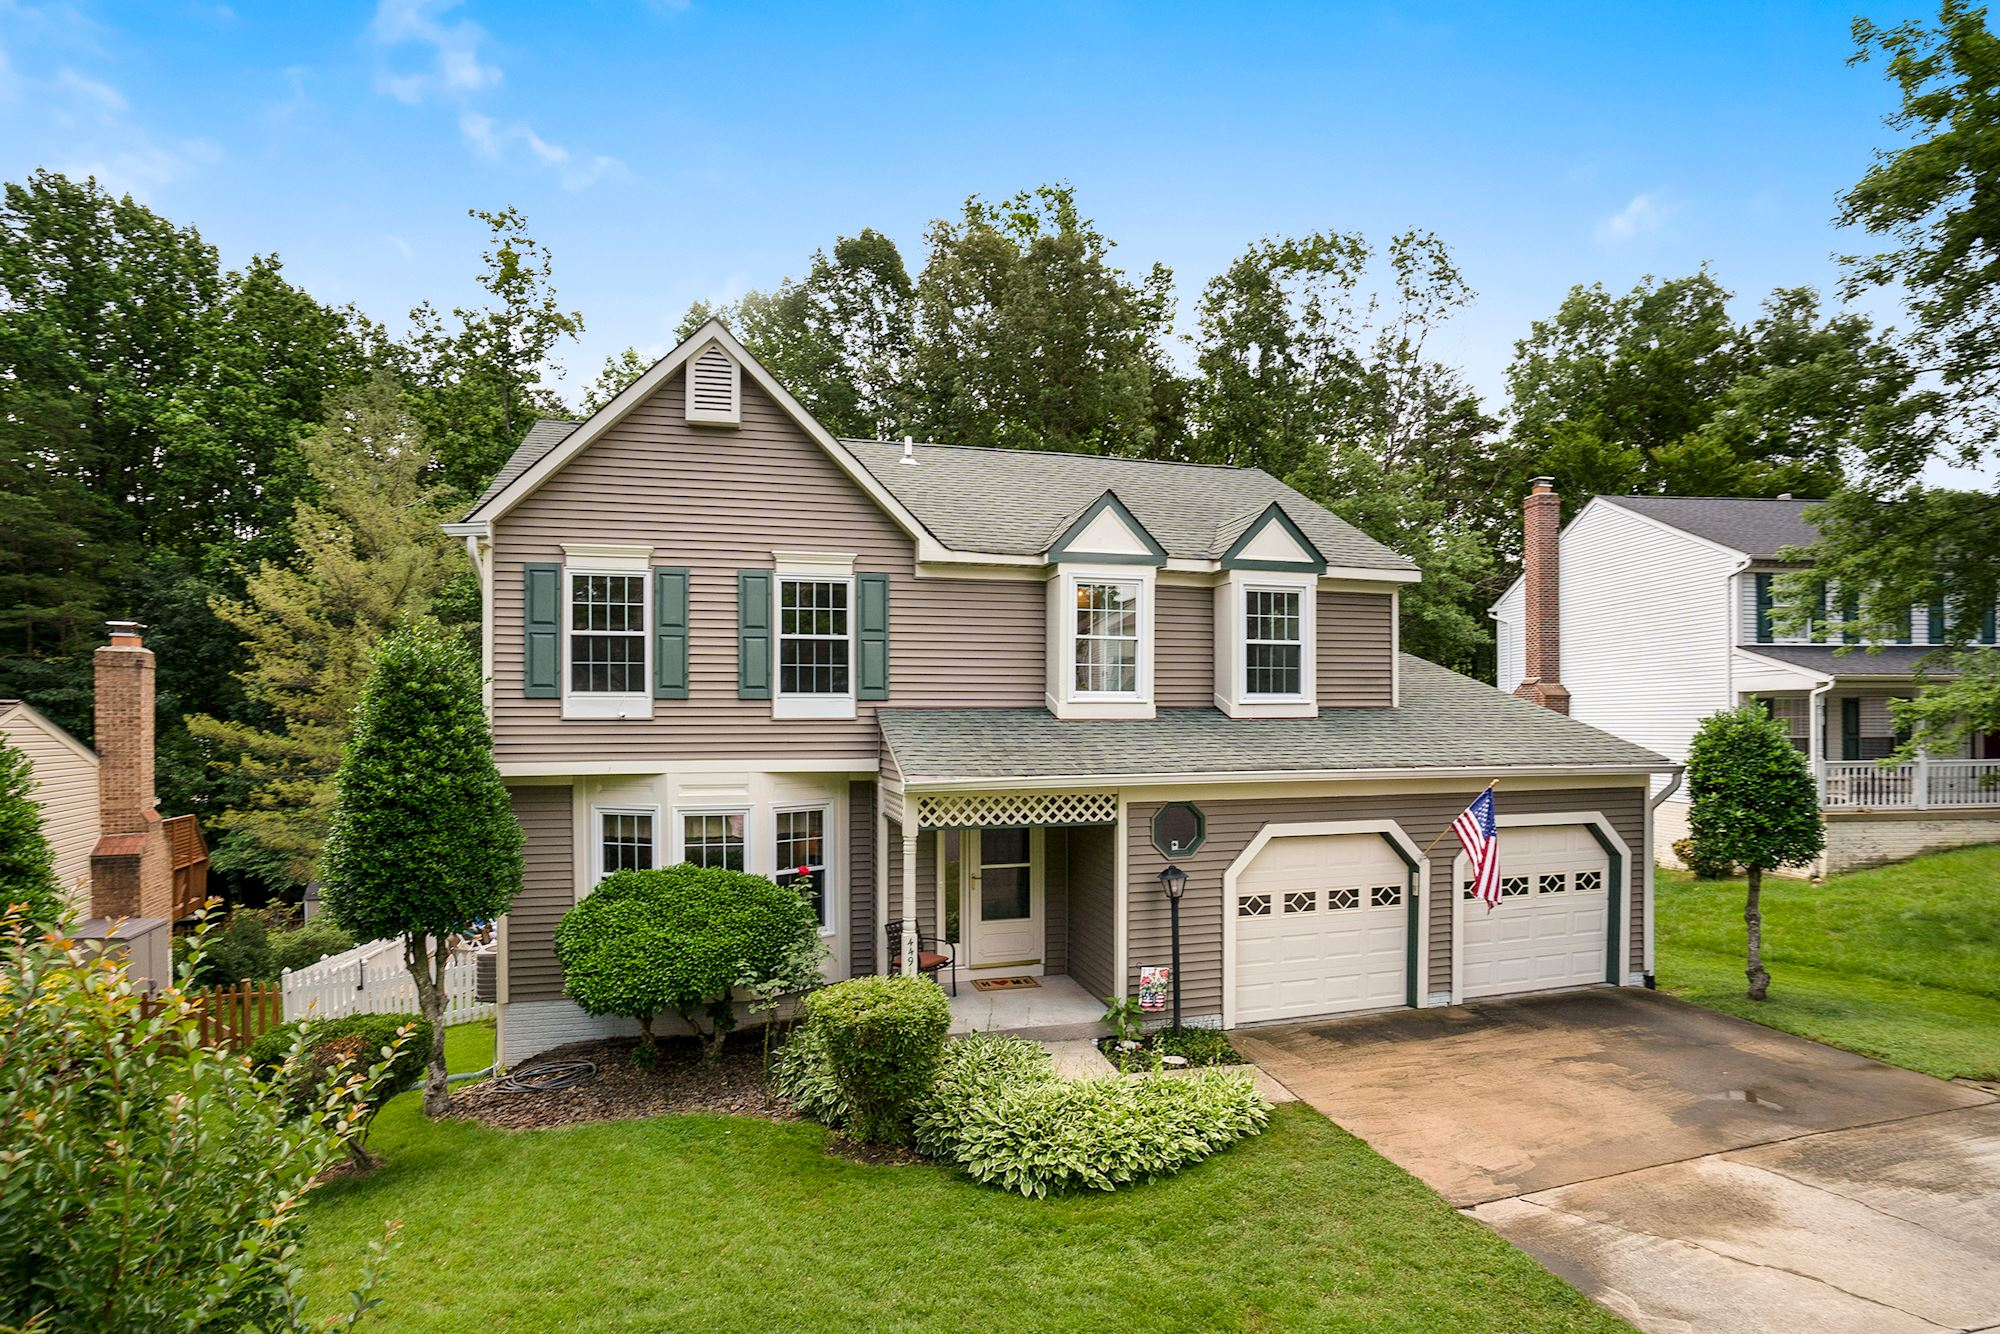 Charming Woodbridge Home on Cul-De-Sac With Amazing Outdoor Spaces